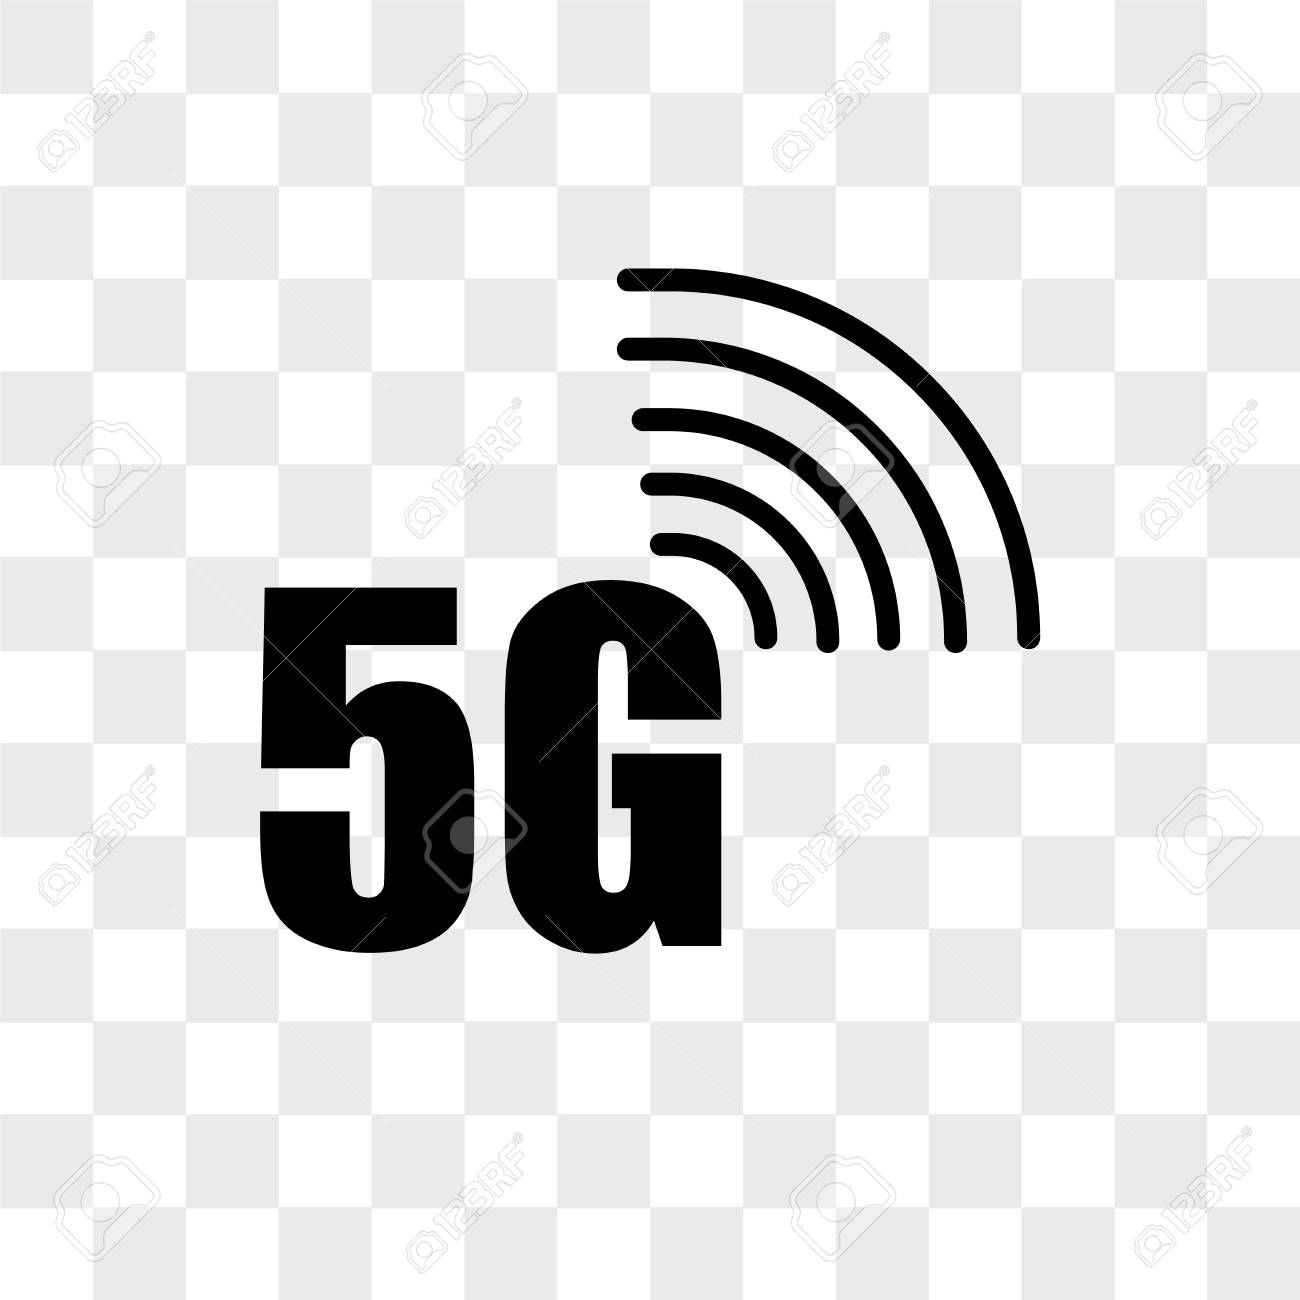 5g Vector Icon Isolated On Transparent Background, 5g Logo Concept Royalty Free Cliparts, Vectors, And Stock Illustration. Image 108989147.